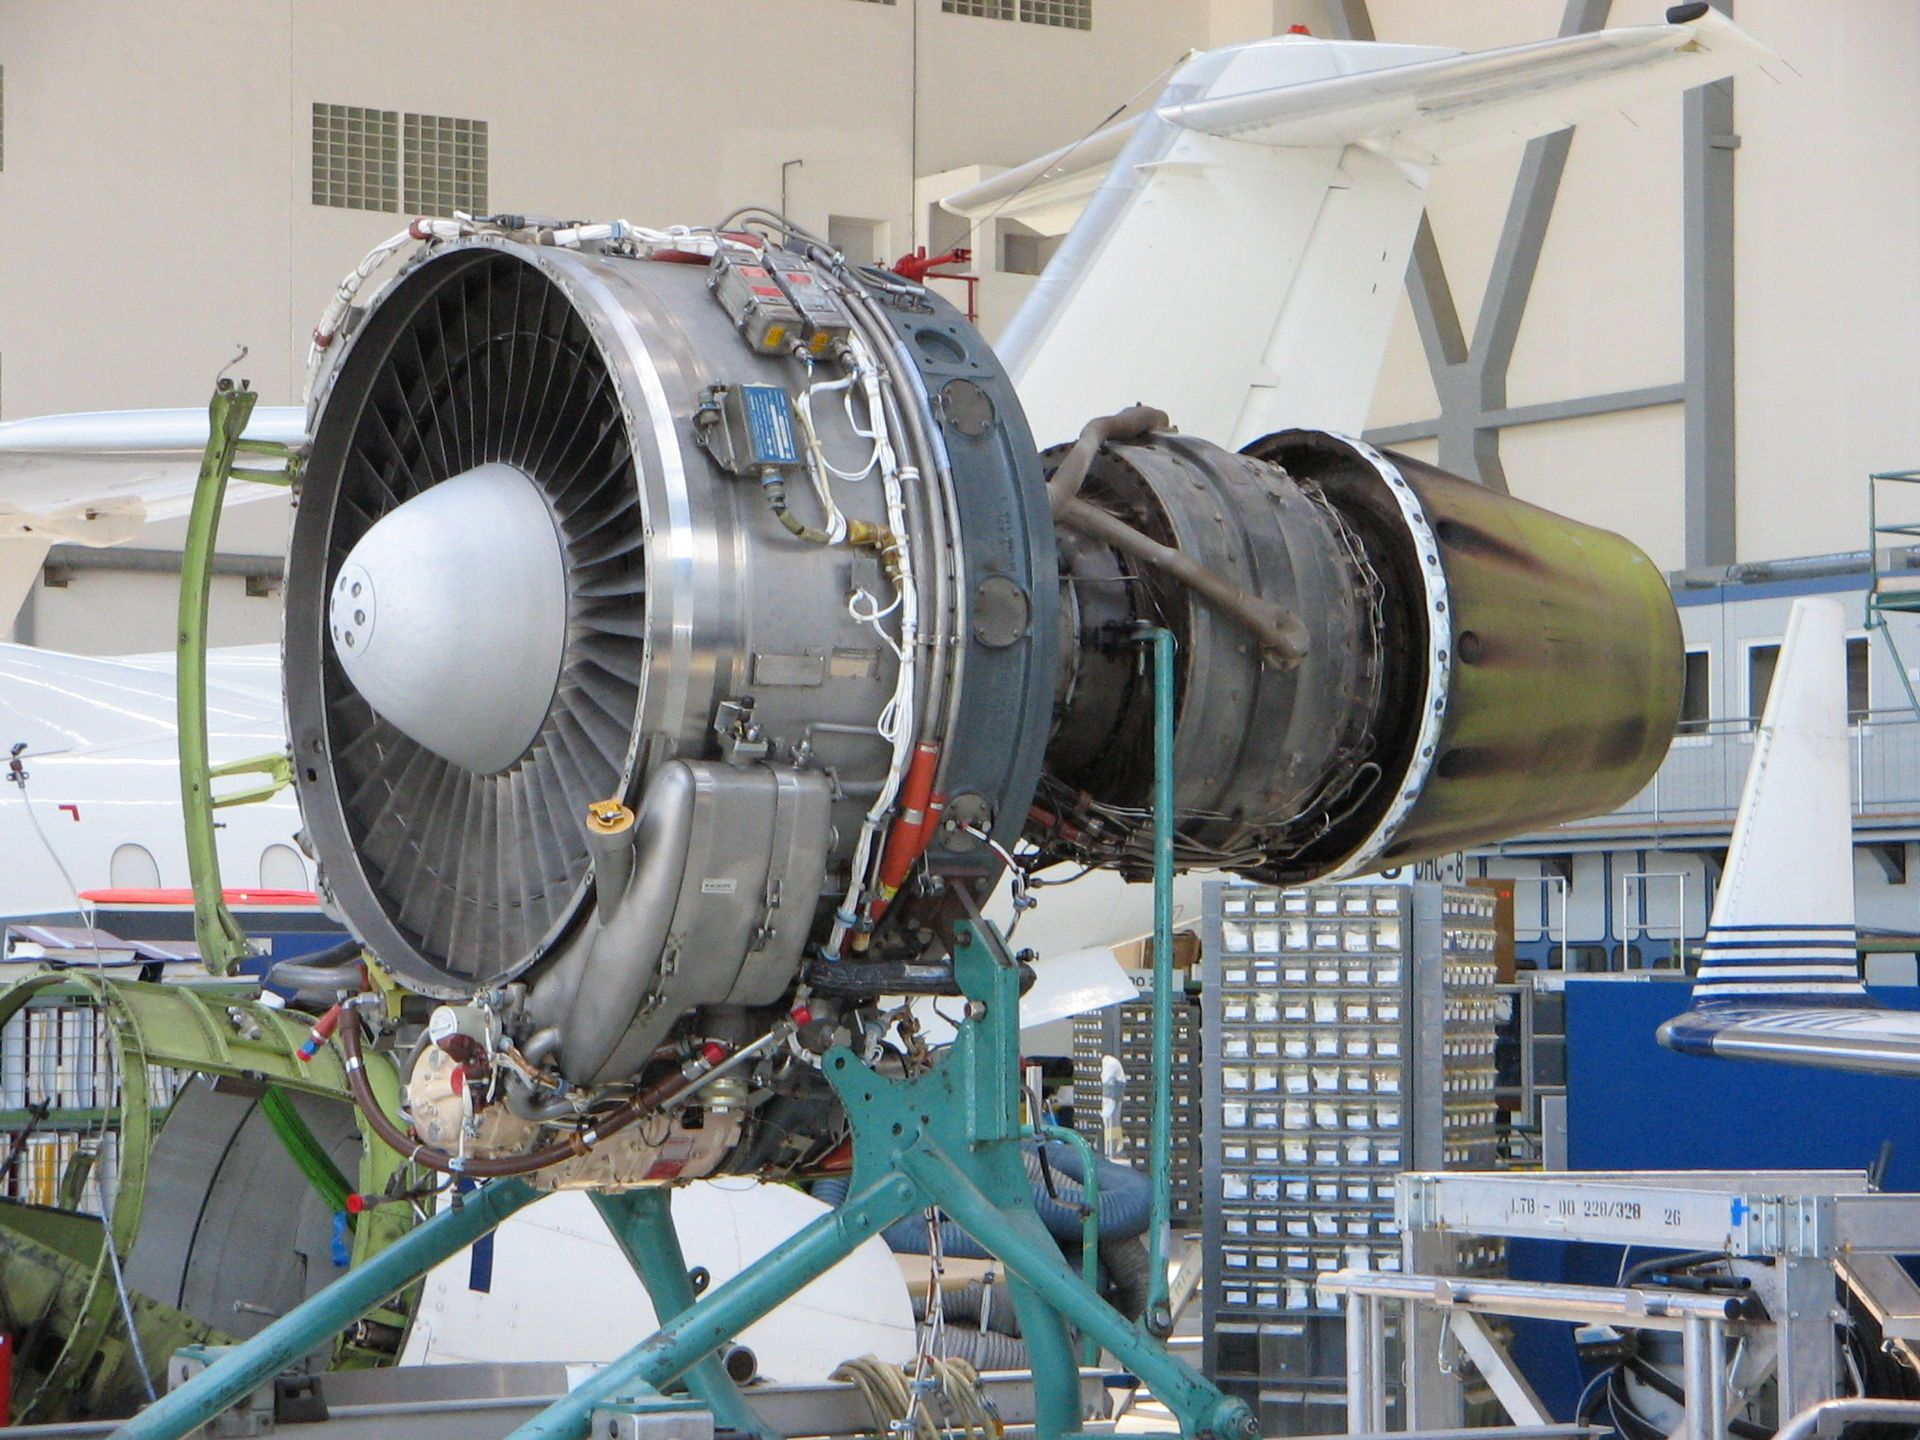 Ly ing ALF 502 is a geared turbofan engine produced by Ly ing